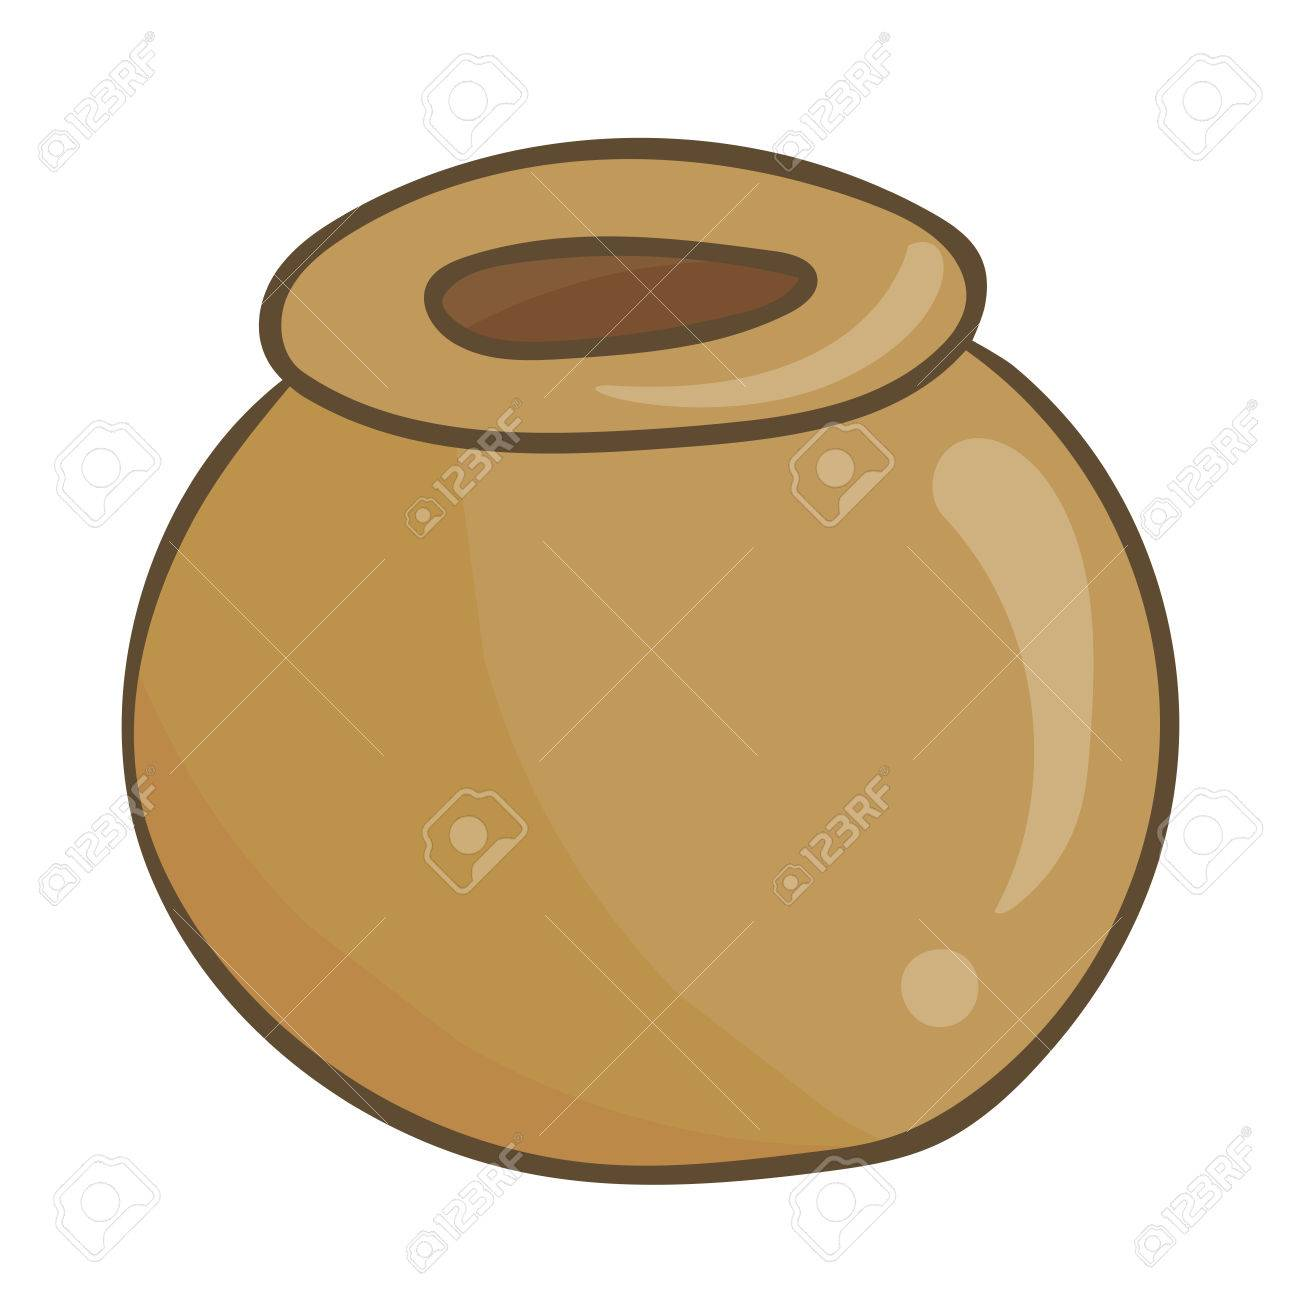 Clay Pot Isolated Illustration On White Background Royalty Free ...